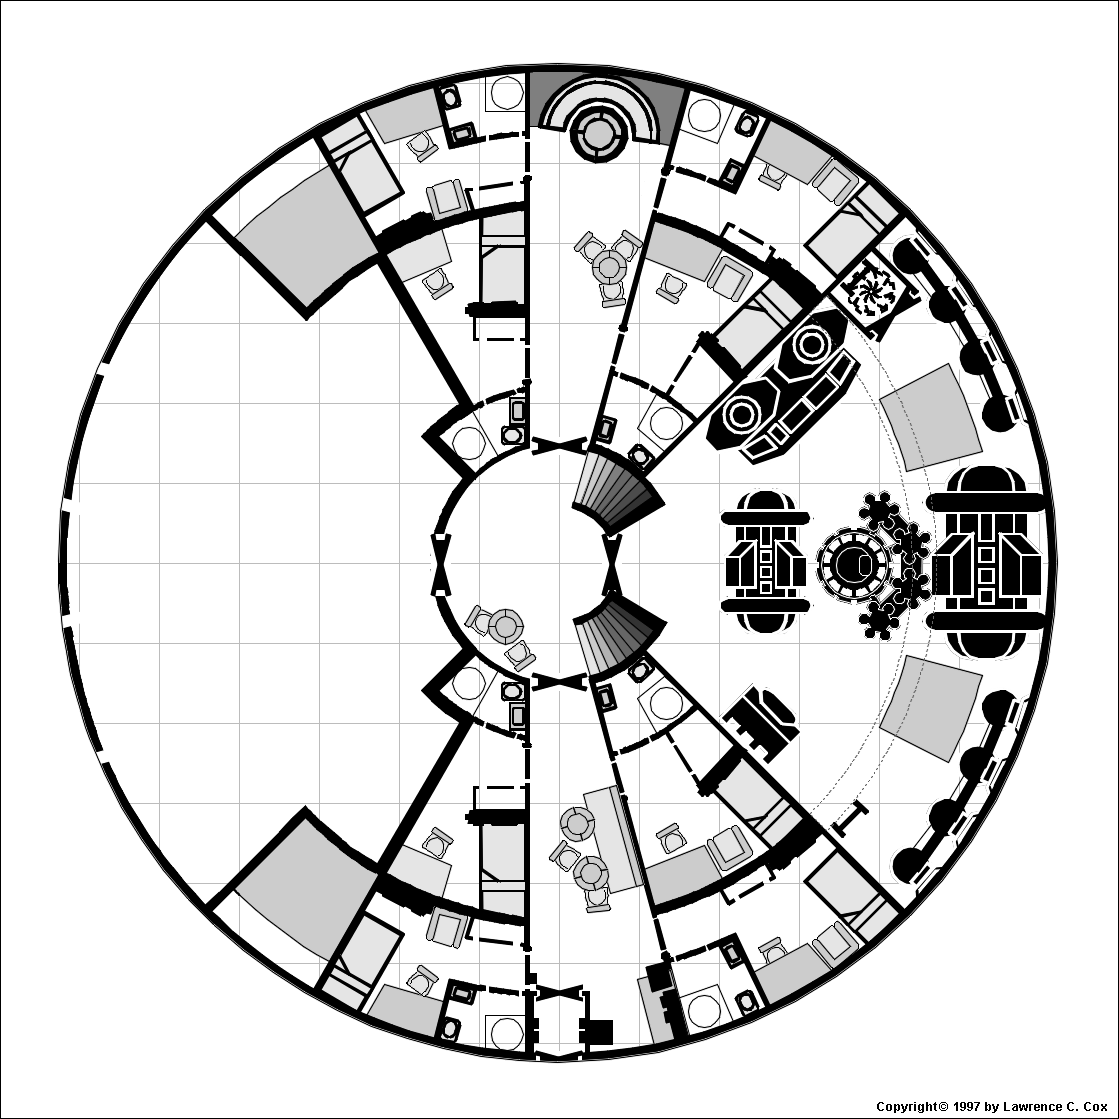 Herstron class surveycontact ship more detailed view of the lower level baanklon Choice Image